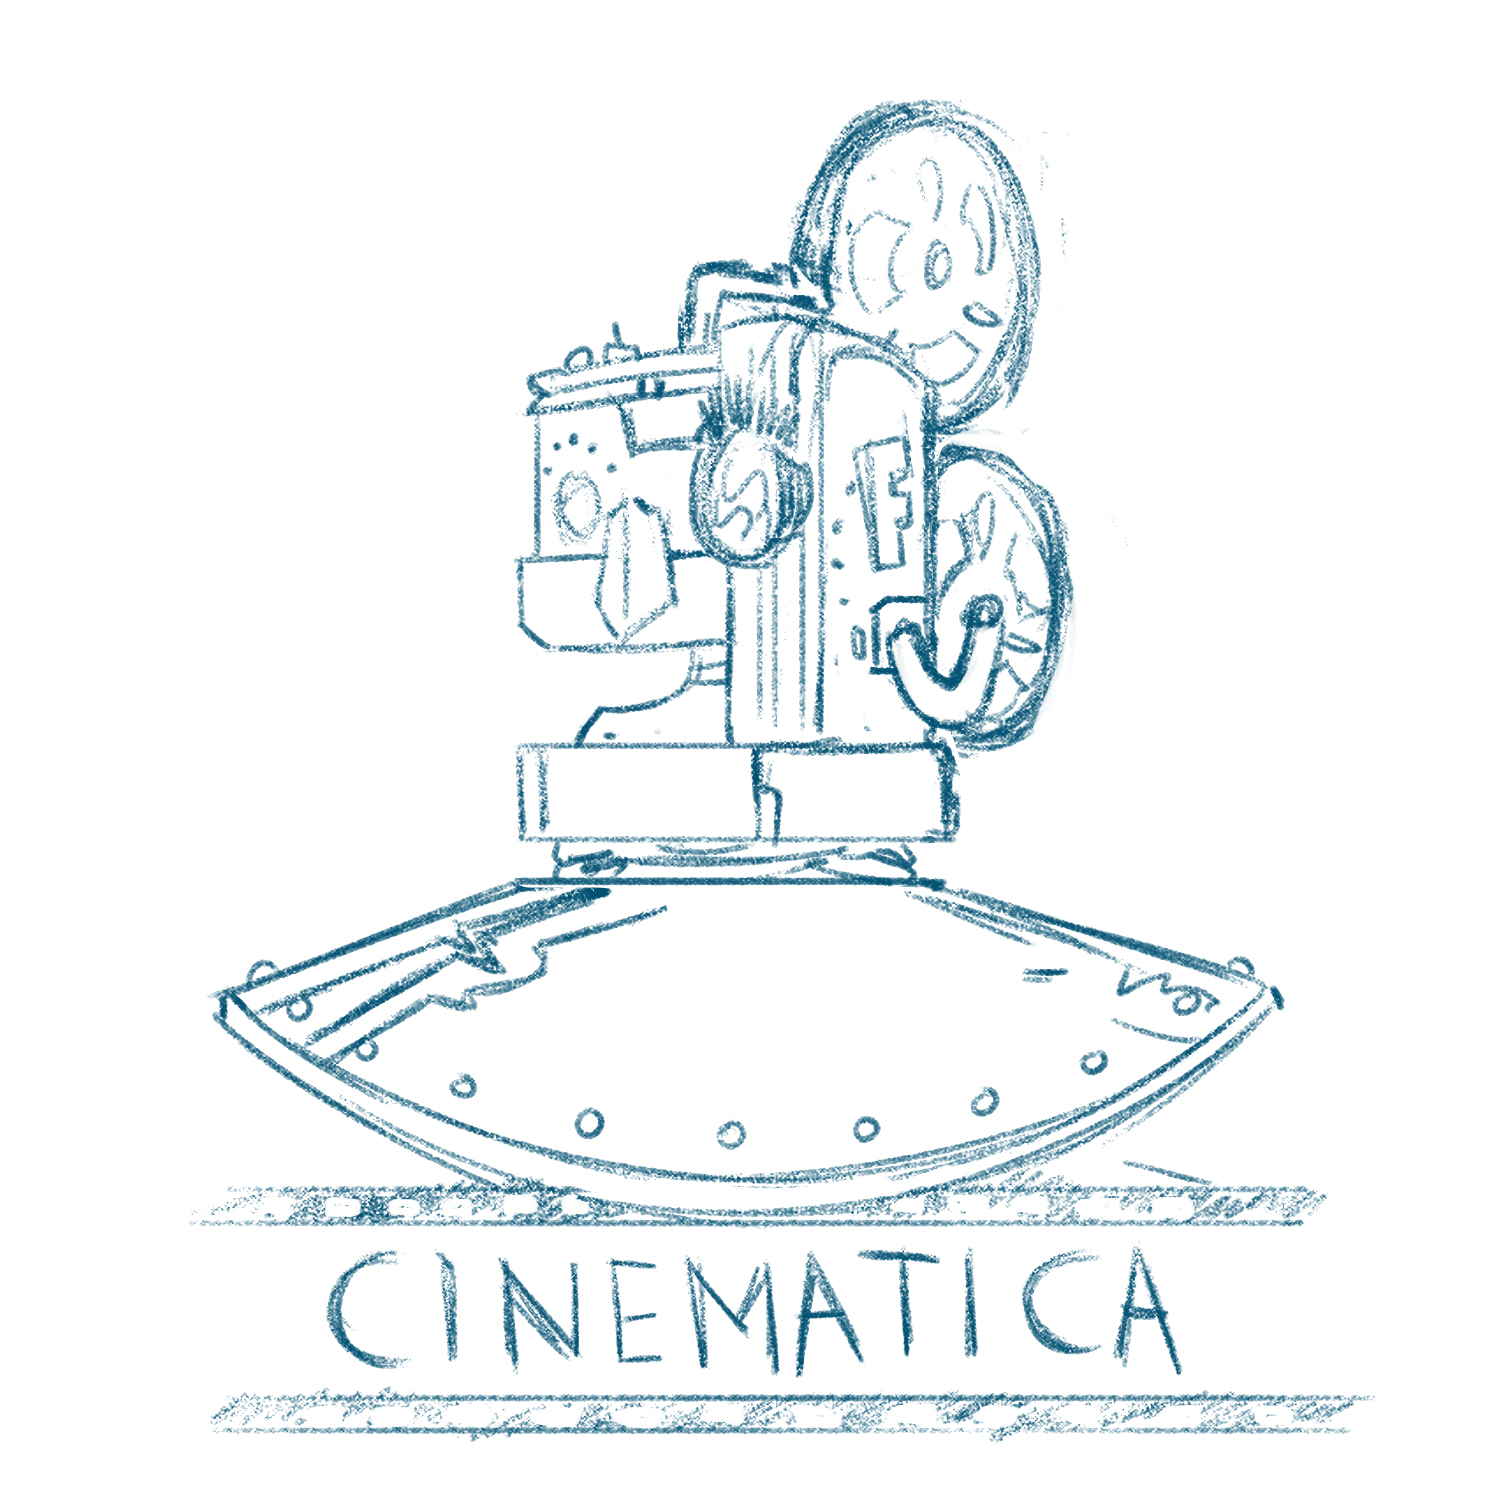 CinematicaSketch3-4Left.jpg